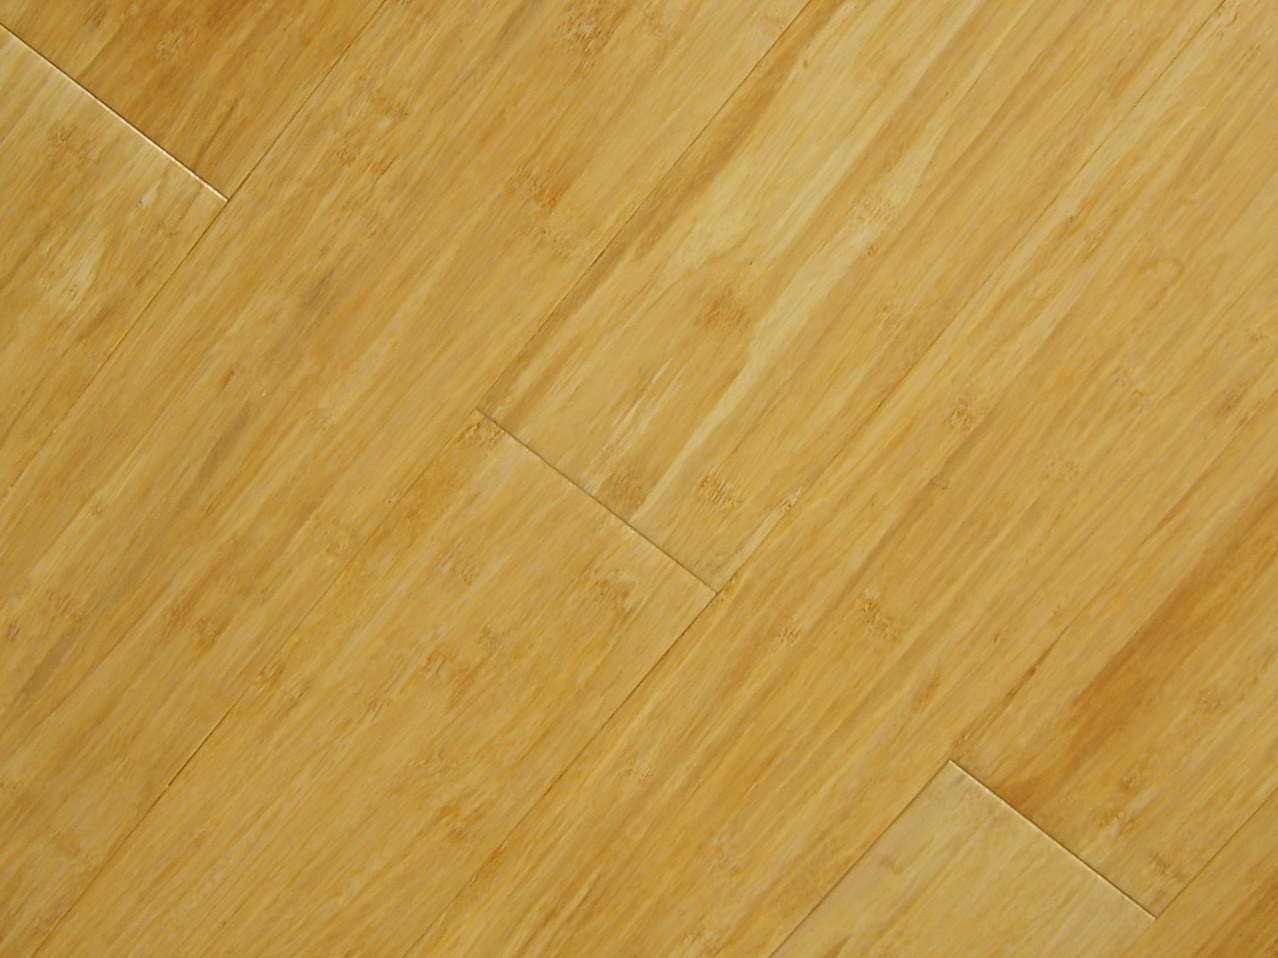 China natural strand woven bamboo flooring china bamboo for Bamboo hardwood flooring